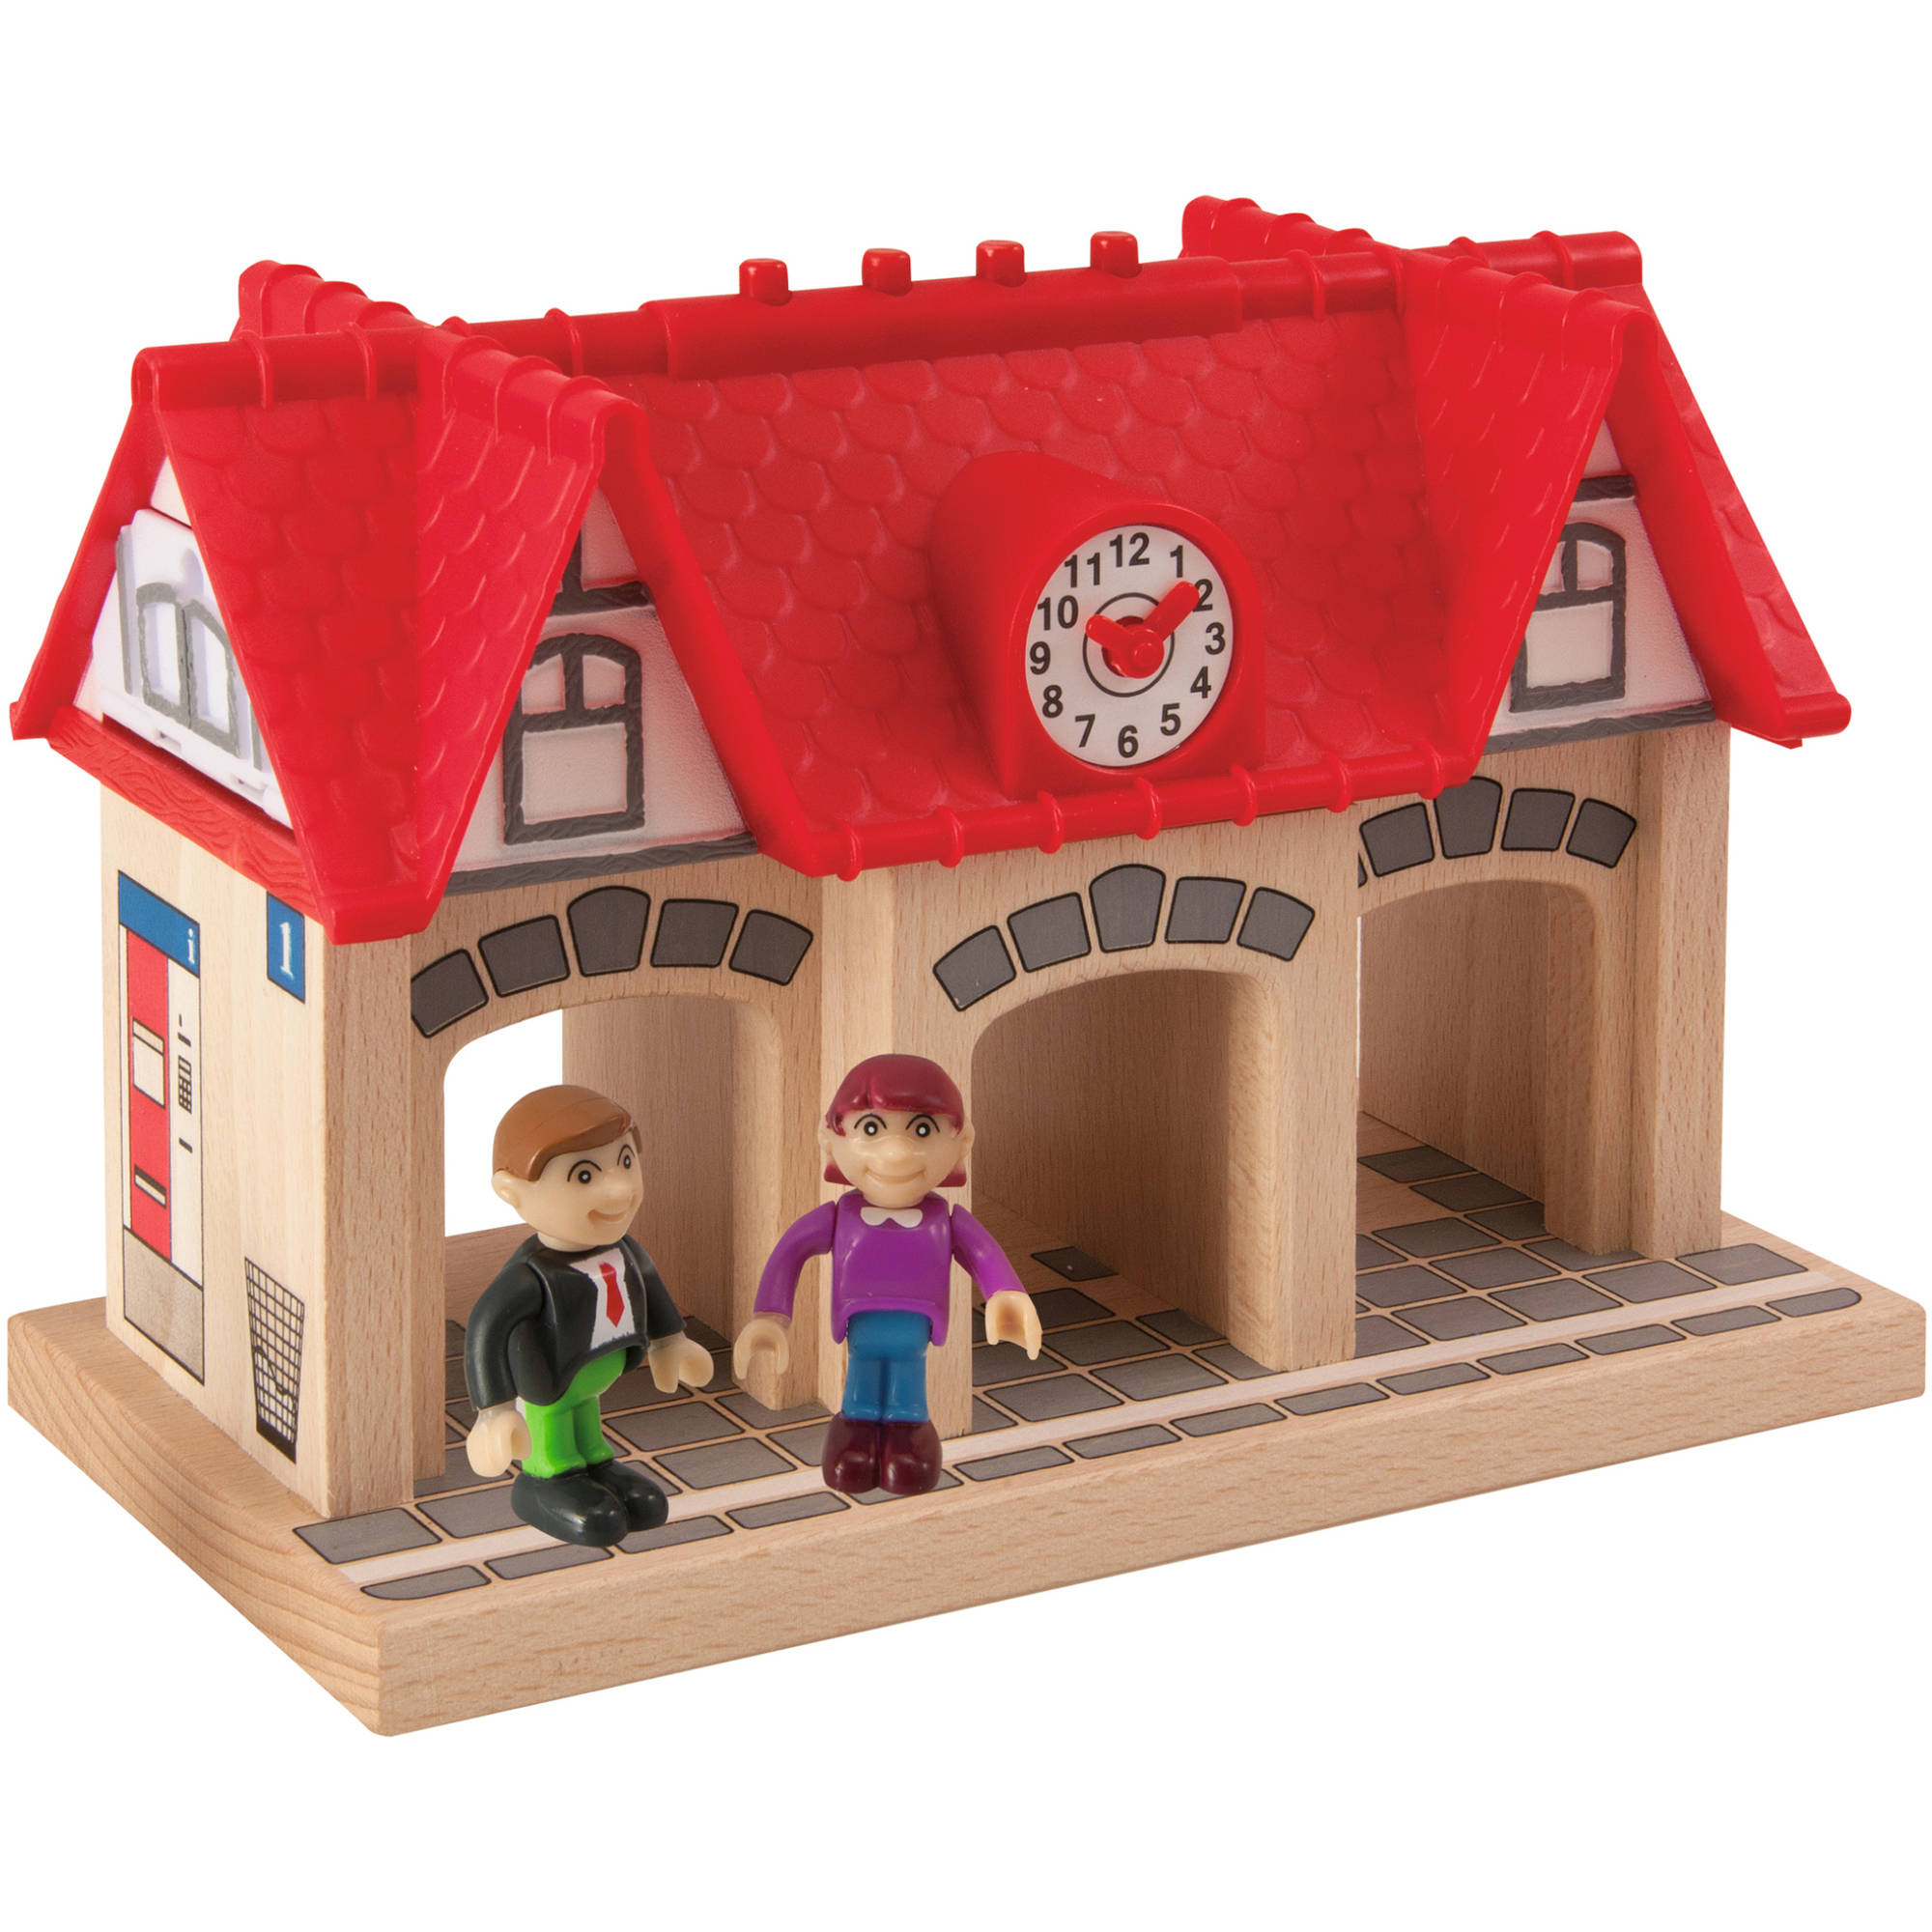 Eichhorn 4-Piece Wooden Soundstation for Trains Sets